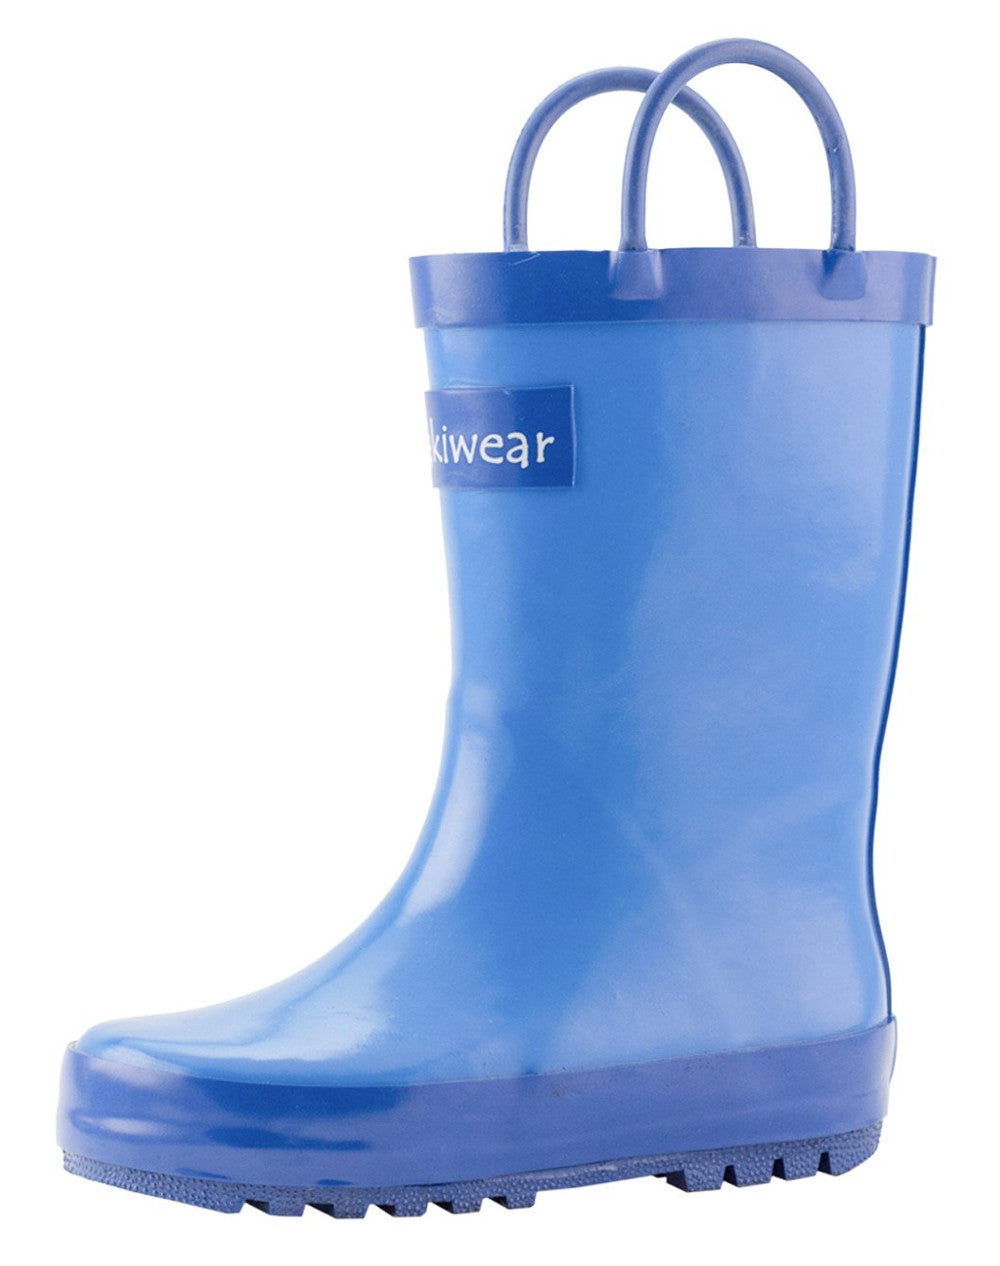 Cobalt Blue Loop Handle Rubber Rain Boots